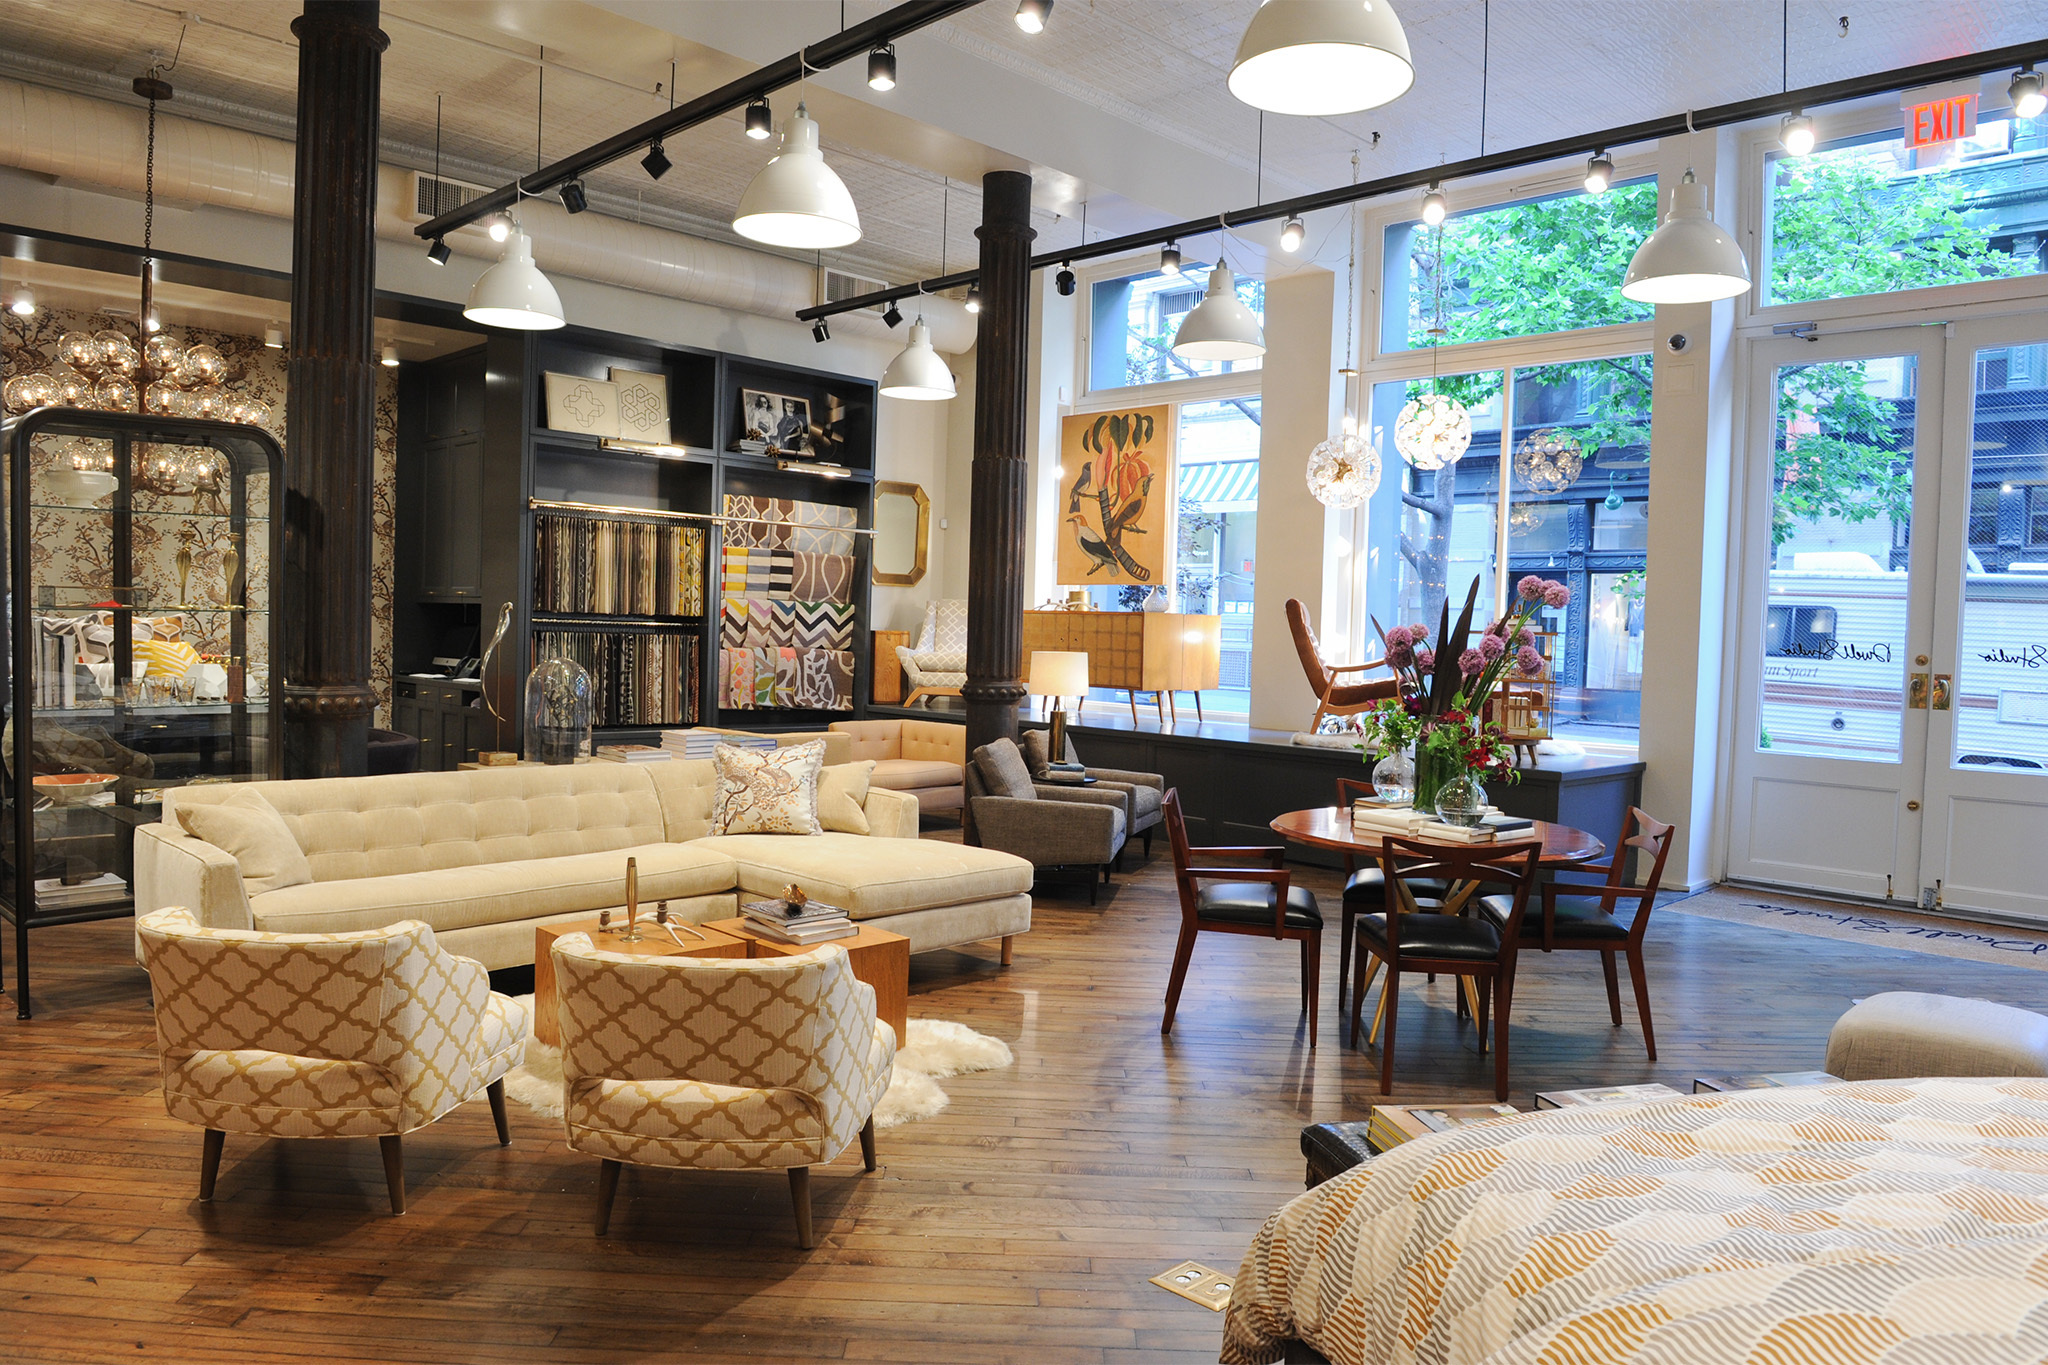 Best Home Decor Stores Home Decor Stores In Nyc For Decorating Ideas And Home